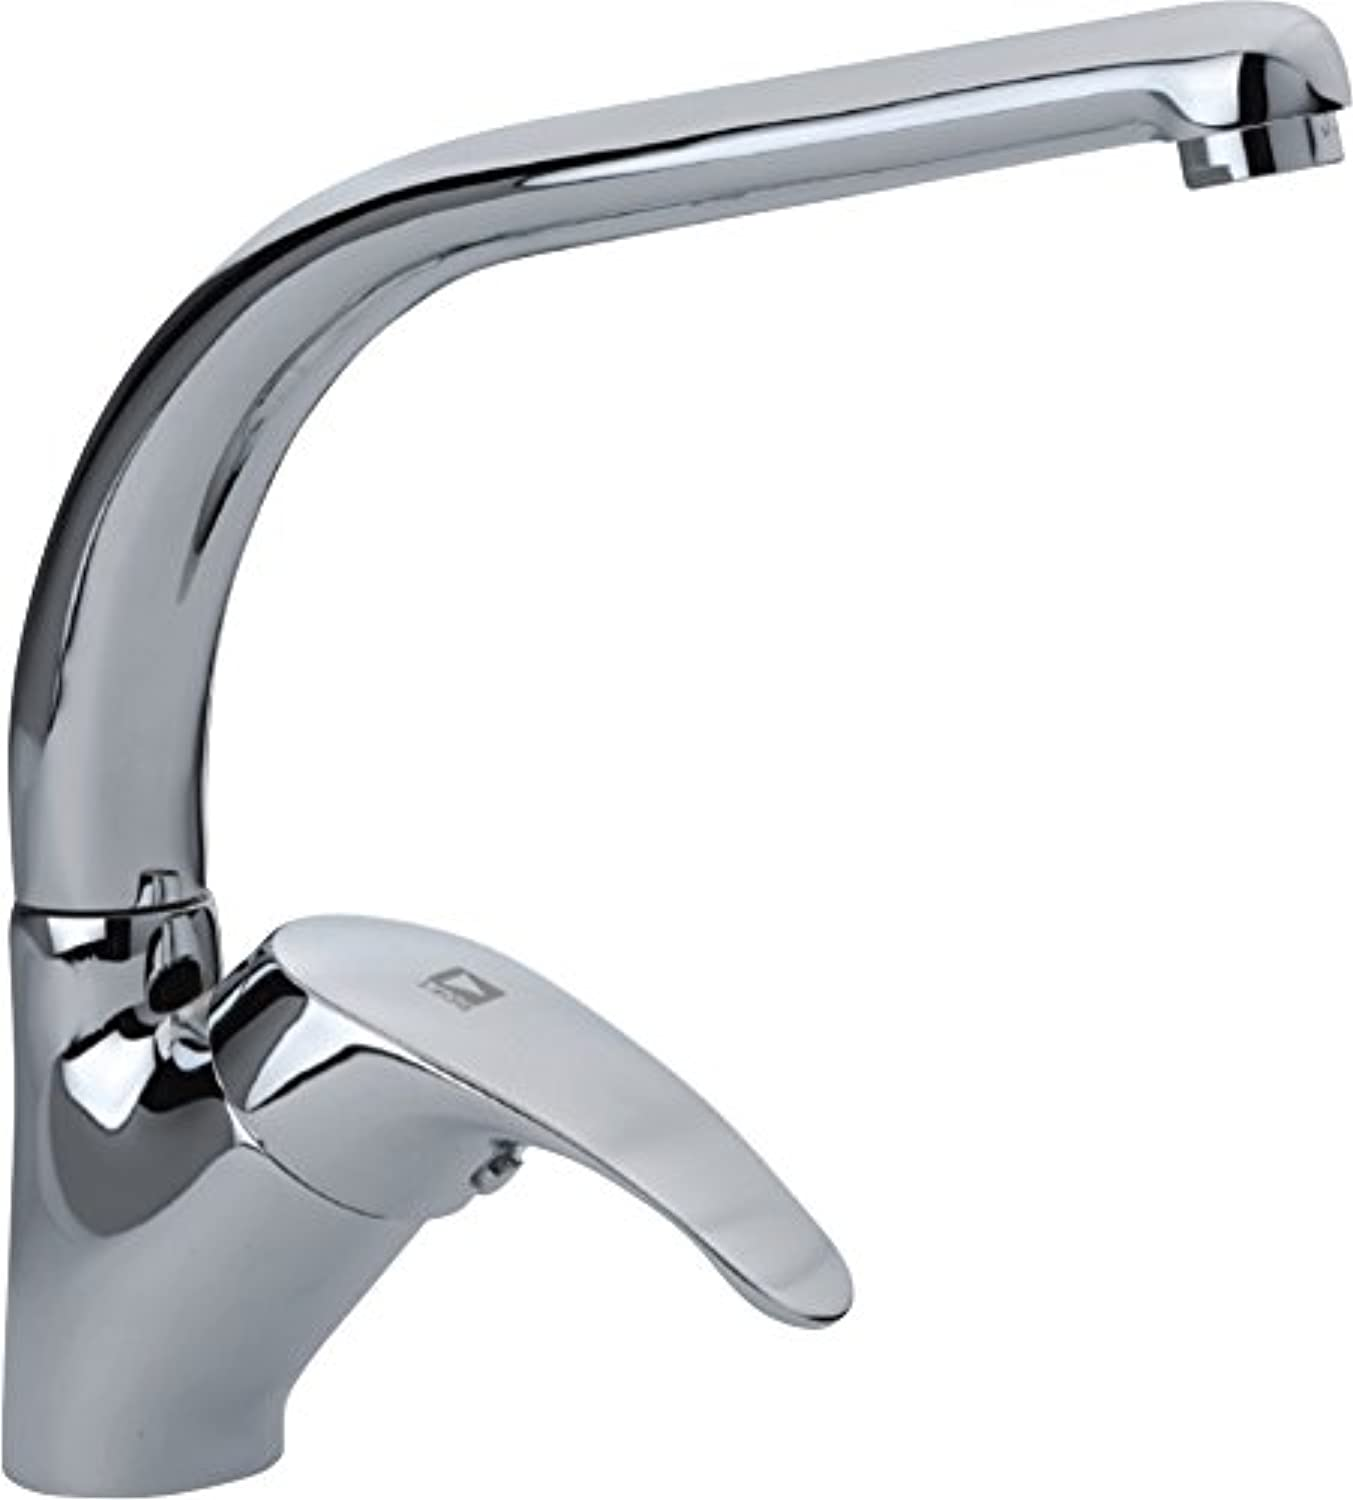 Boet 924?°F5?–?Tap Freg Shelf Spout fundid